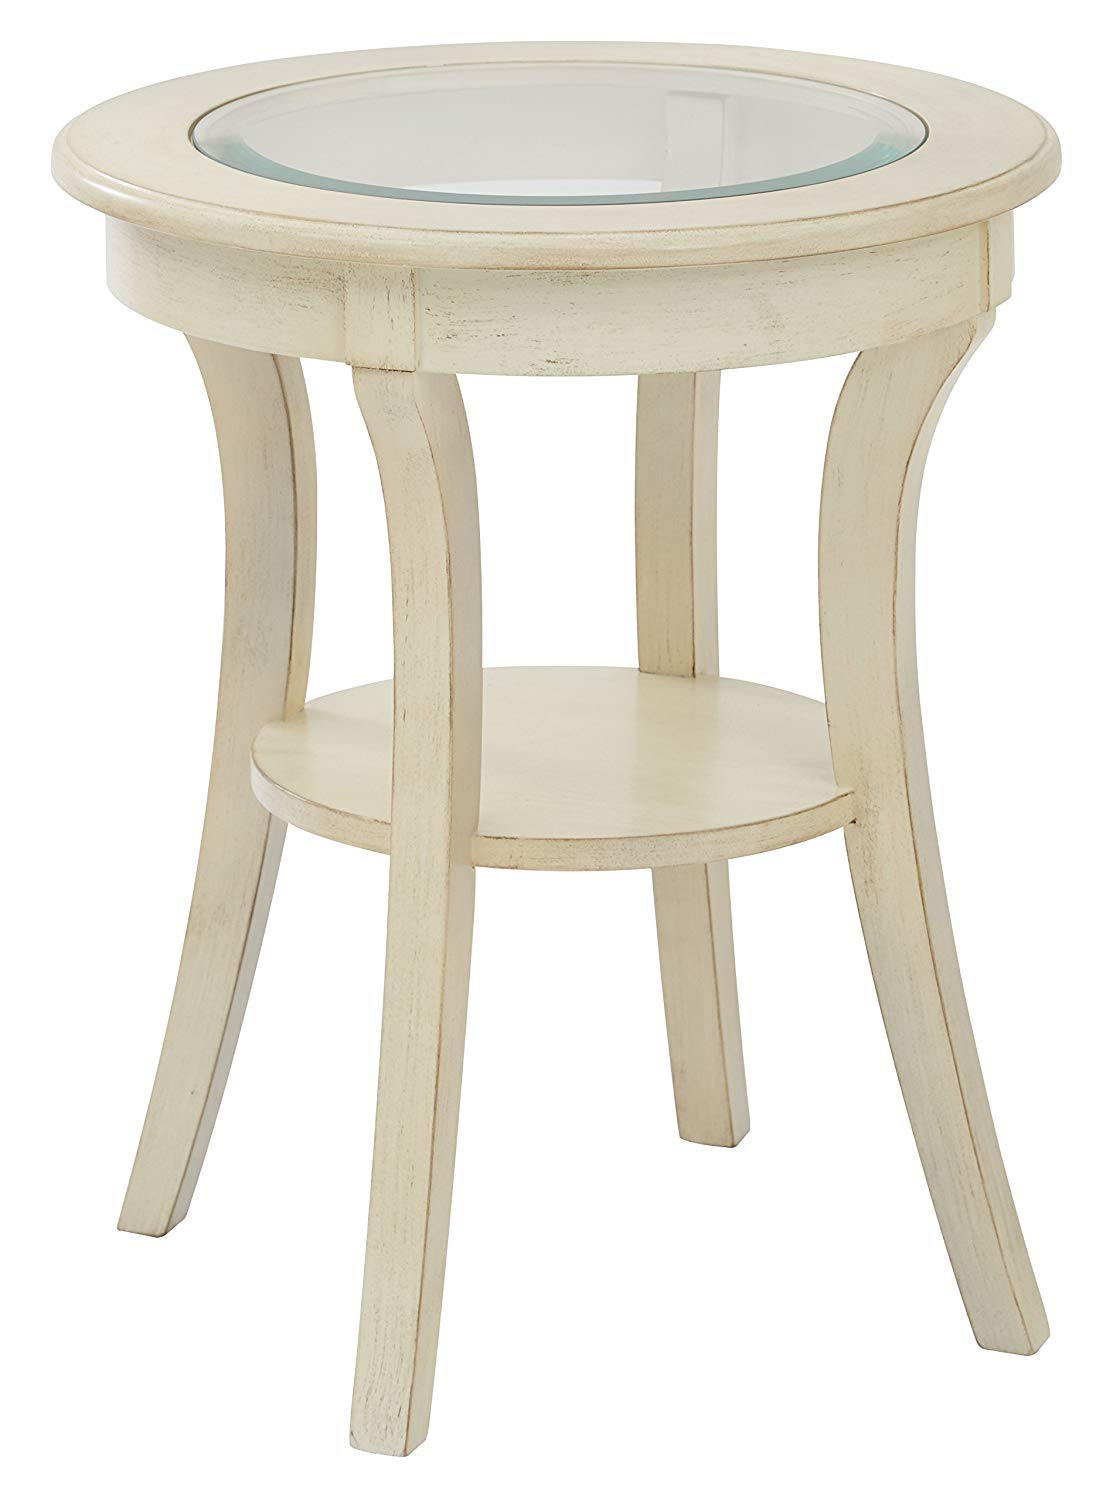 office star harper hand painted round accent table with mirimyn glass top antique white finish kitchen dining the iron company outdoor side furniture what color sage gold trunk